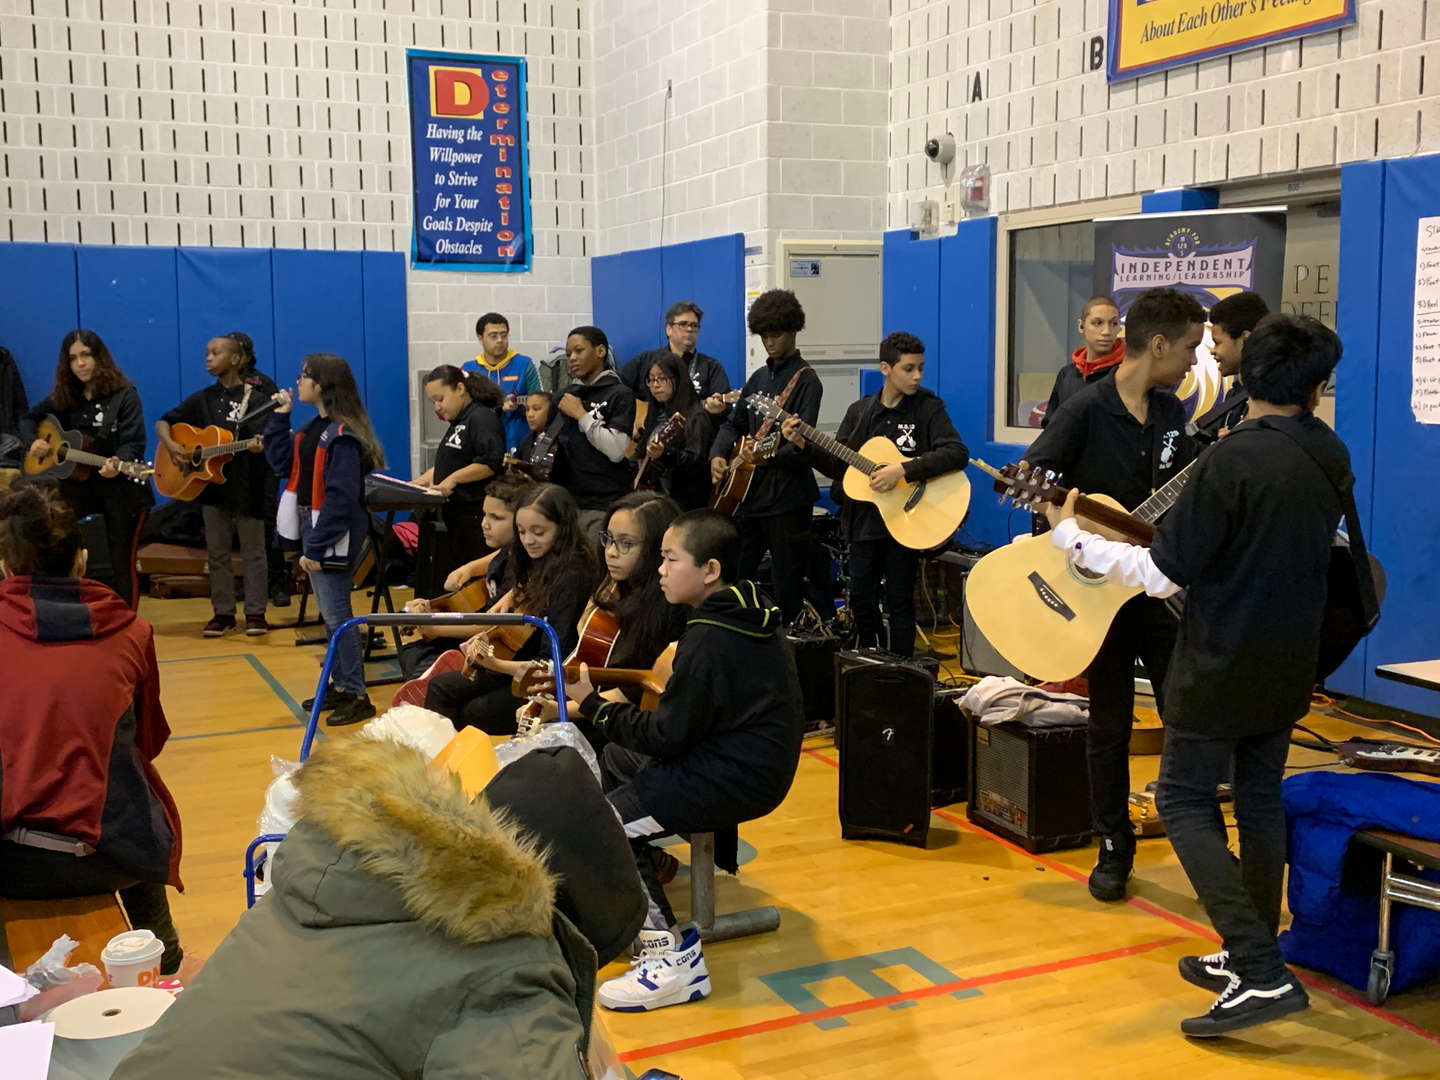 Students playing instruments in the gymnasium